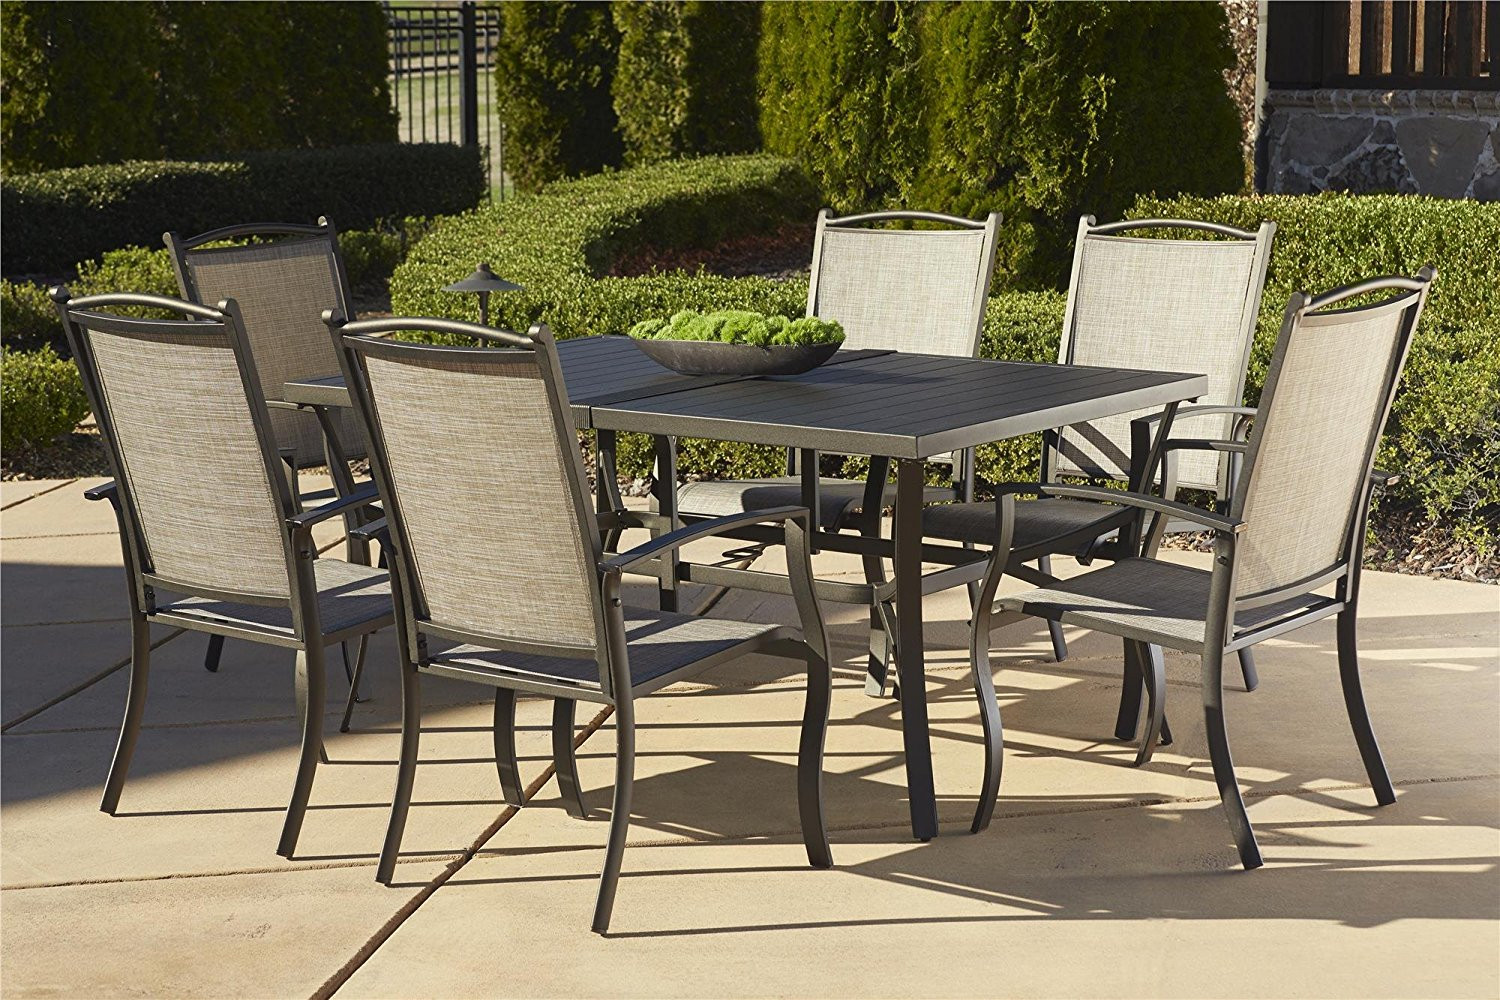 Best ideas about Patio Dining Sets On Sale . Save or Pin Cosco Outdoor Piece Serene Ridge Aluminum Patio Dining Now.